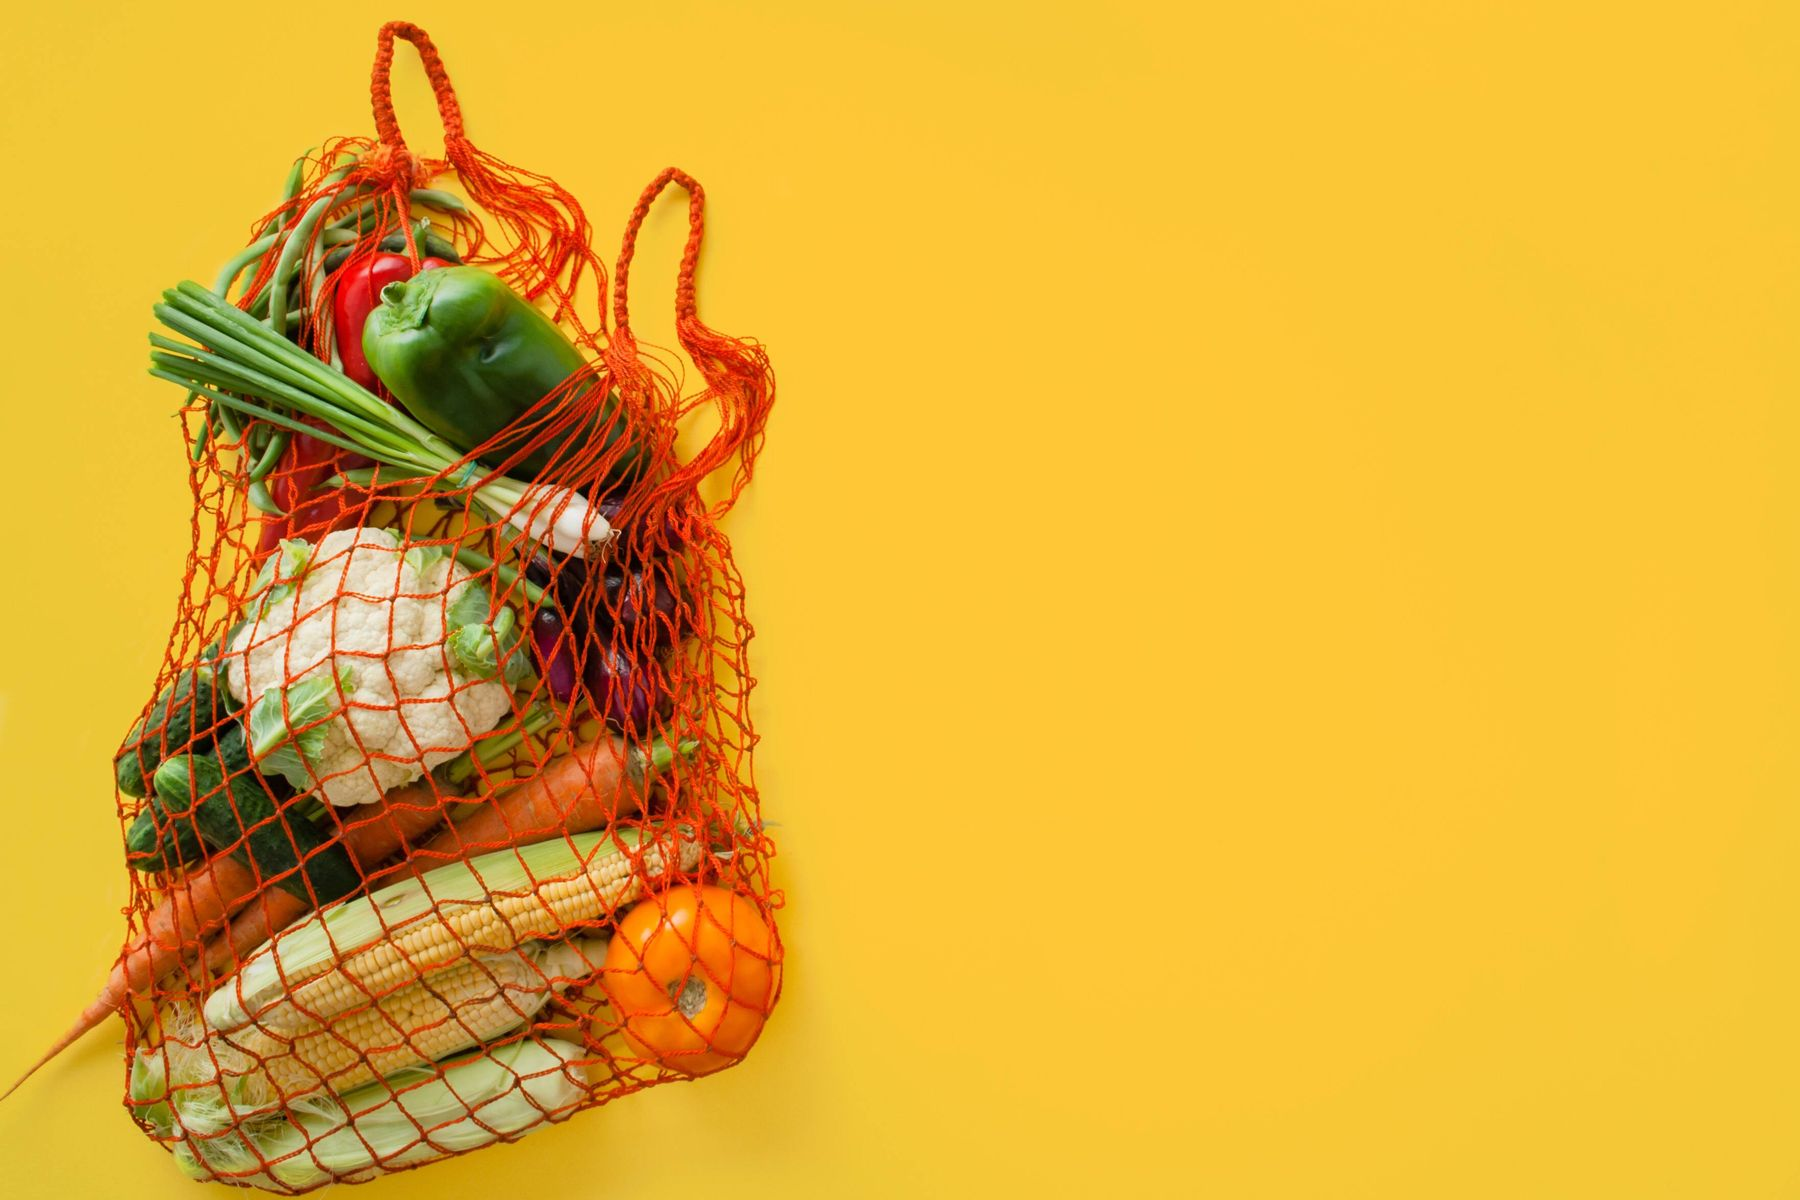 Vegetables in a netted bag